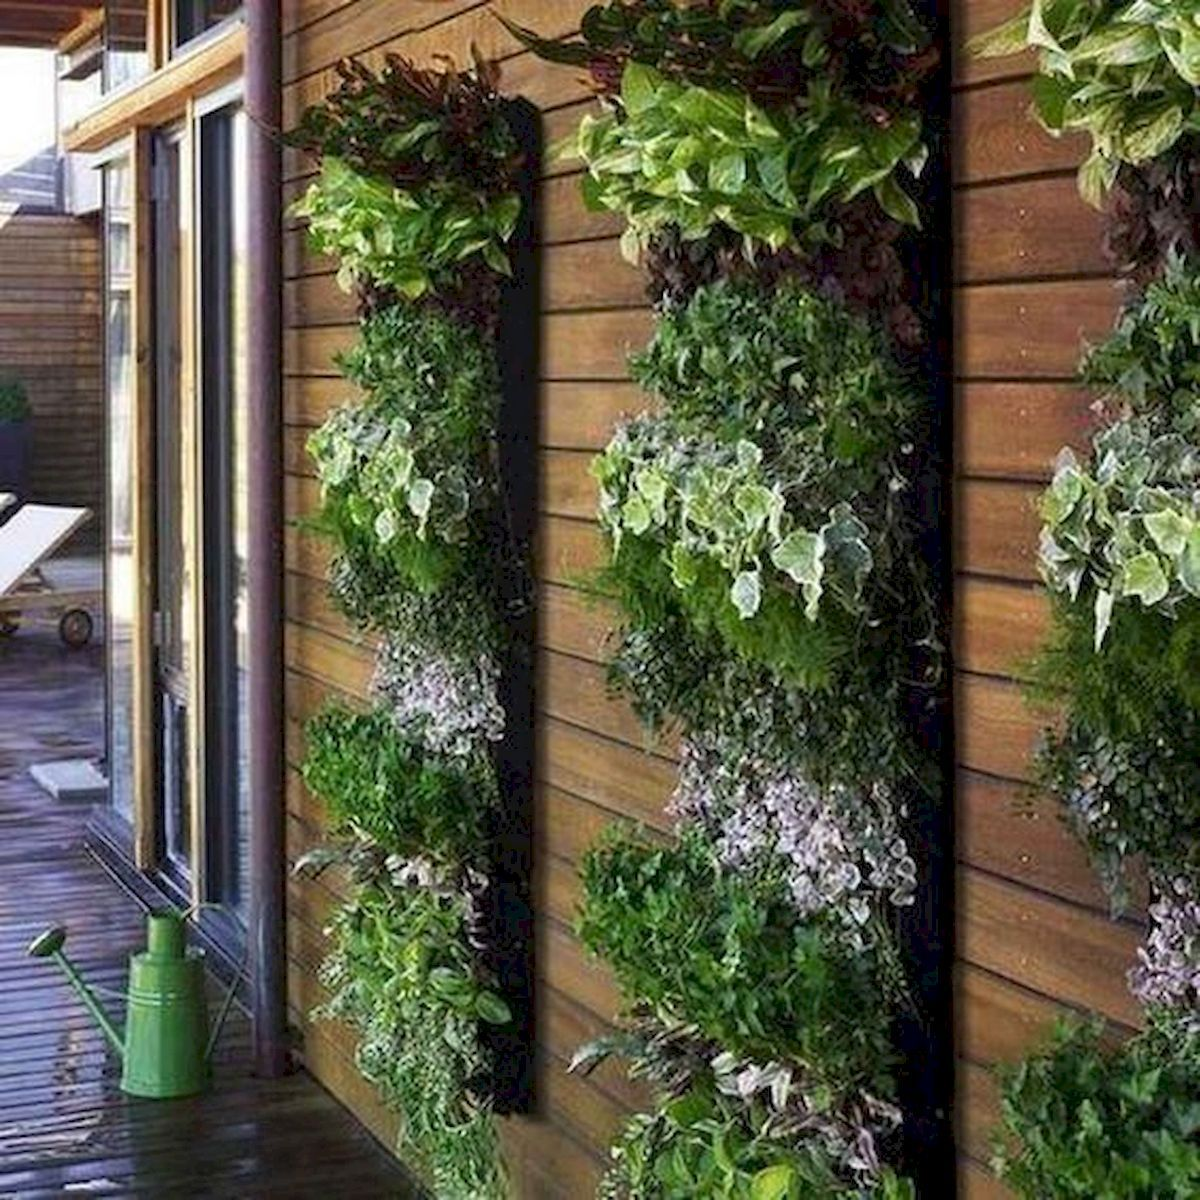 Beautiful Vertical Garden Ideas: 44 Fantastic Vertical Garden Ideas To Make Your Home